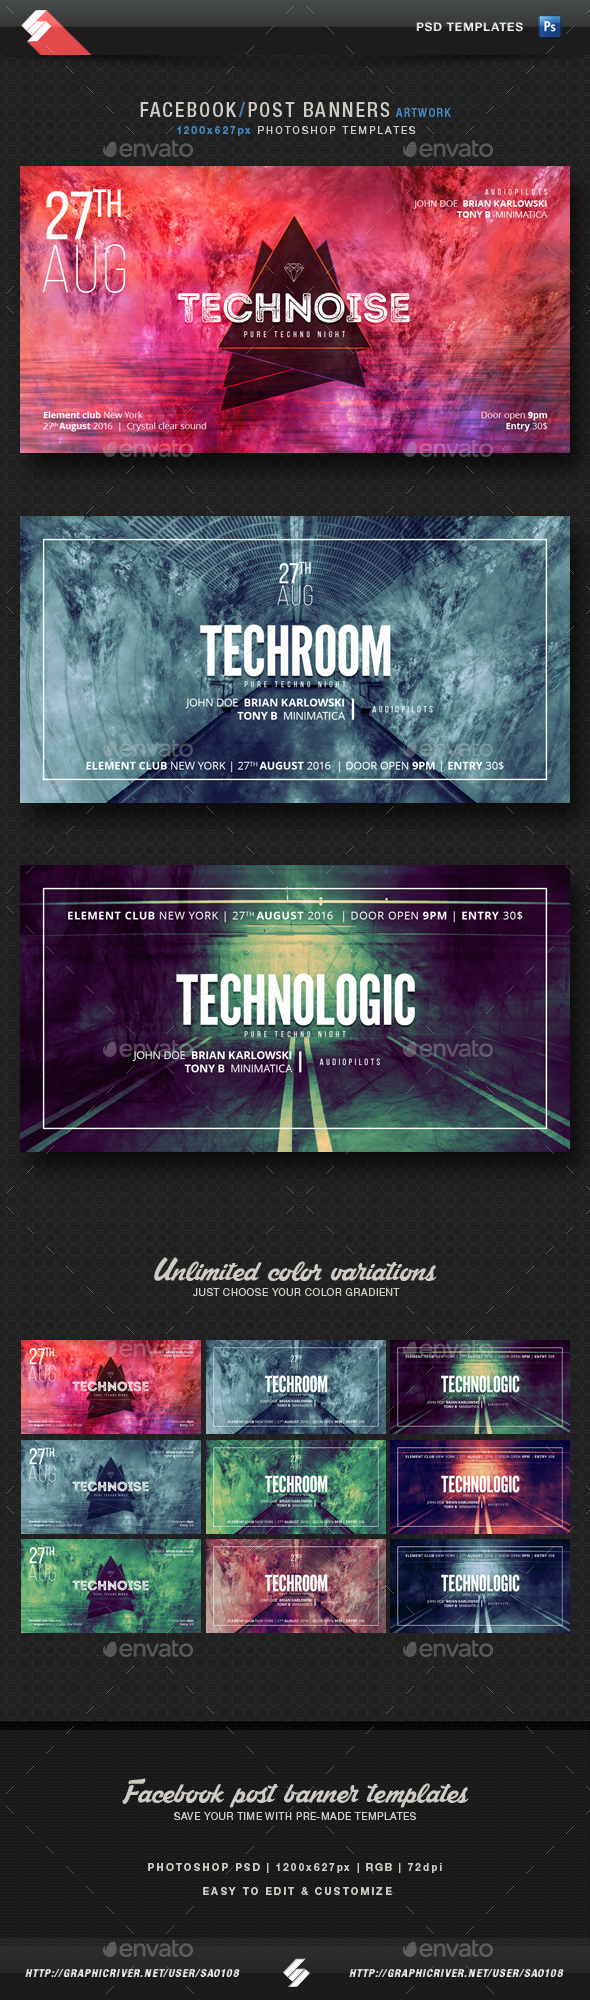 Electronic Music Party Vol1 - Facebook Post Banner Templates - Miscellaneous Social Media